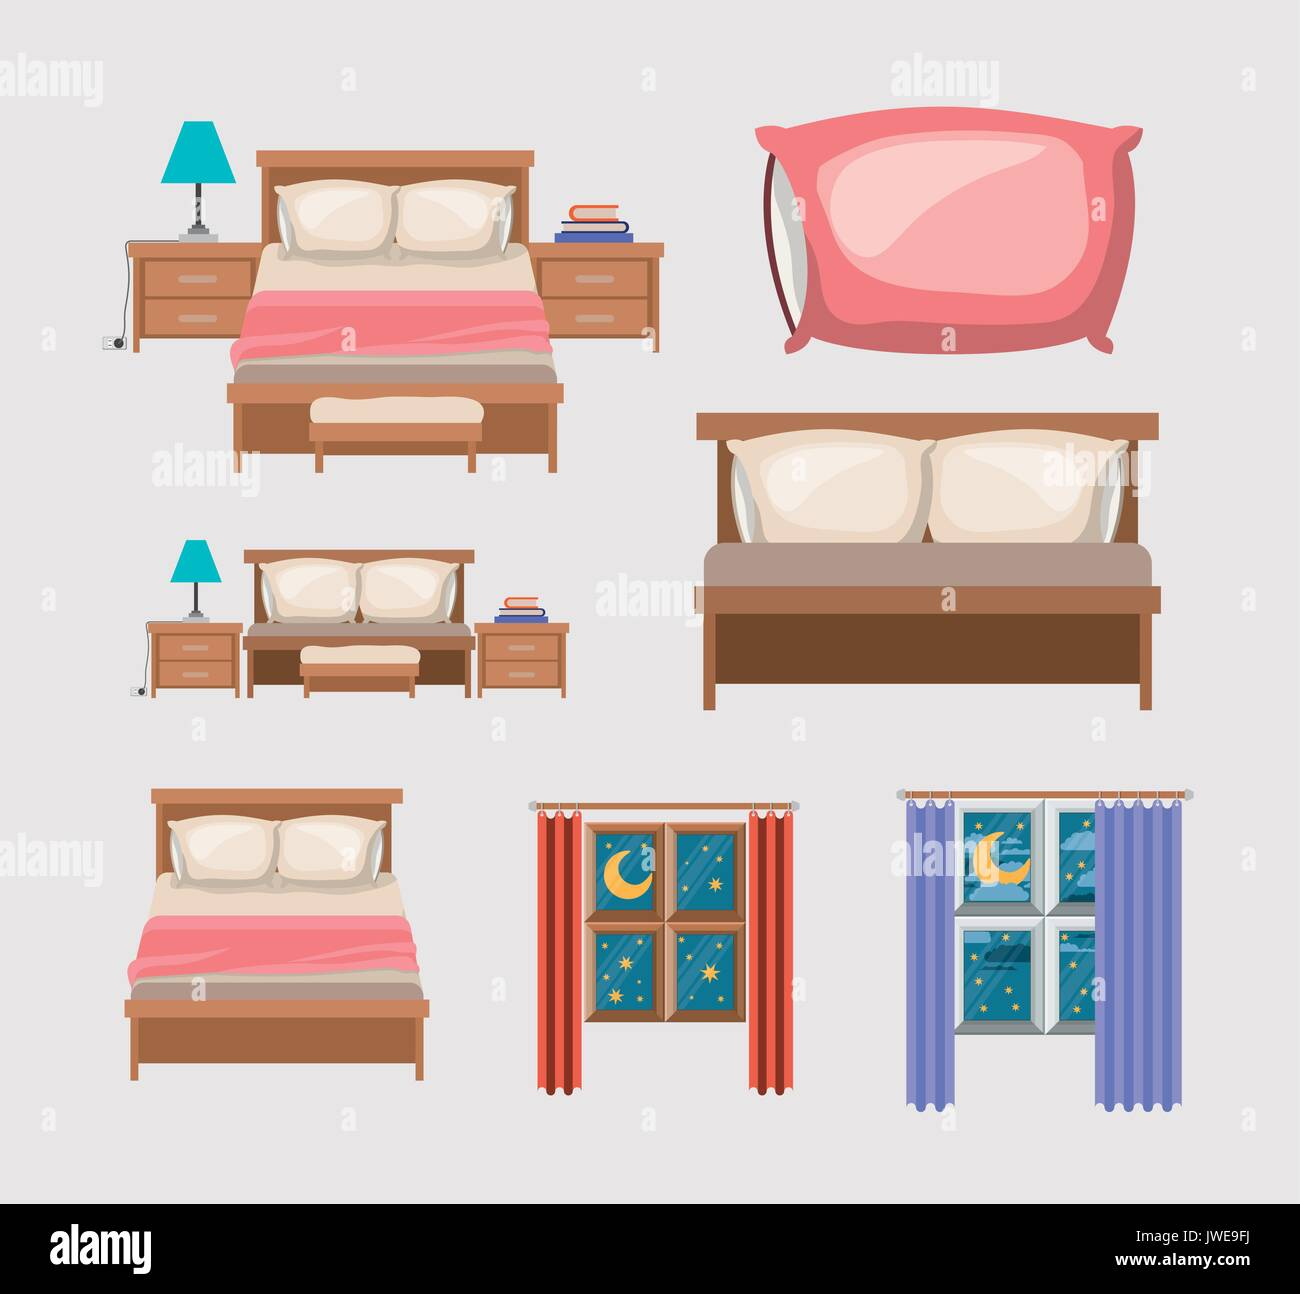 Bedroom Stock Vector Images - Alamy